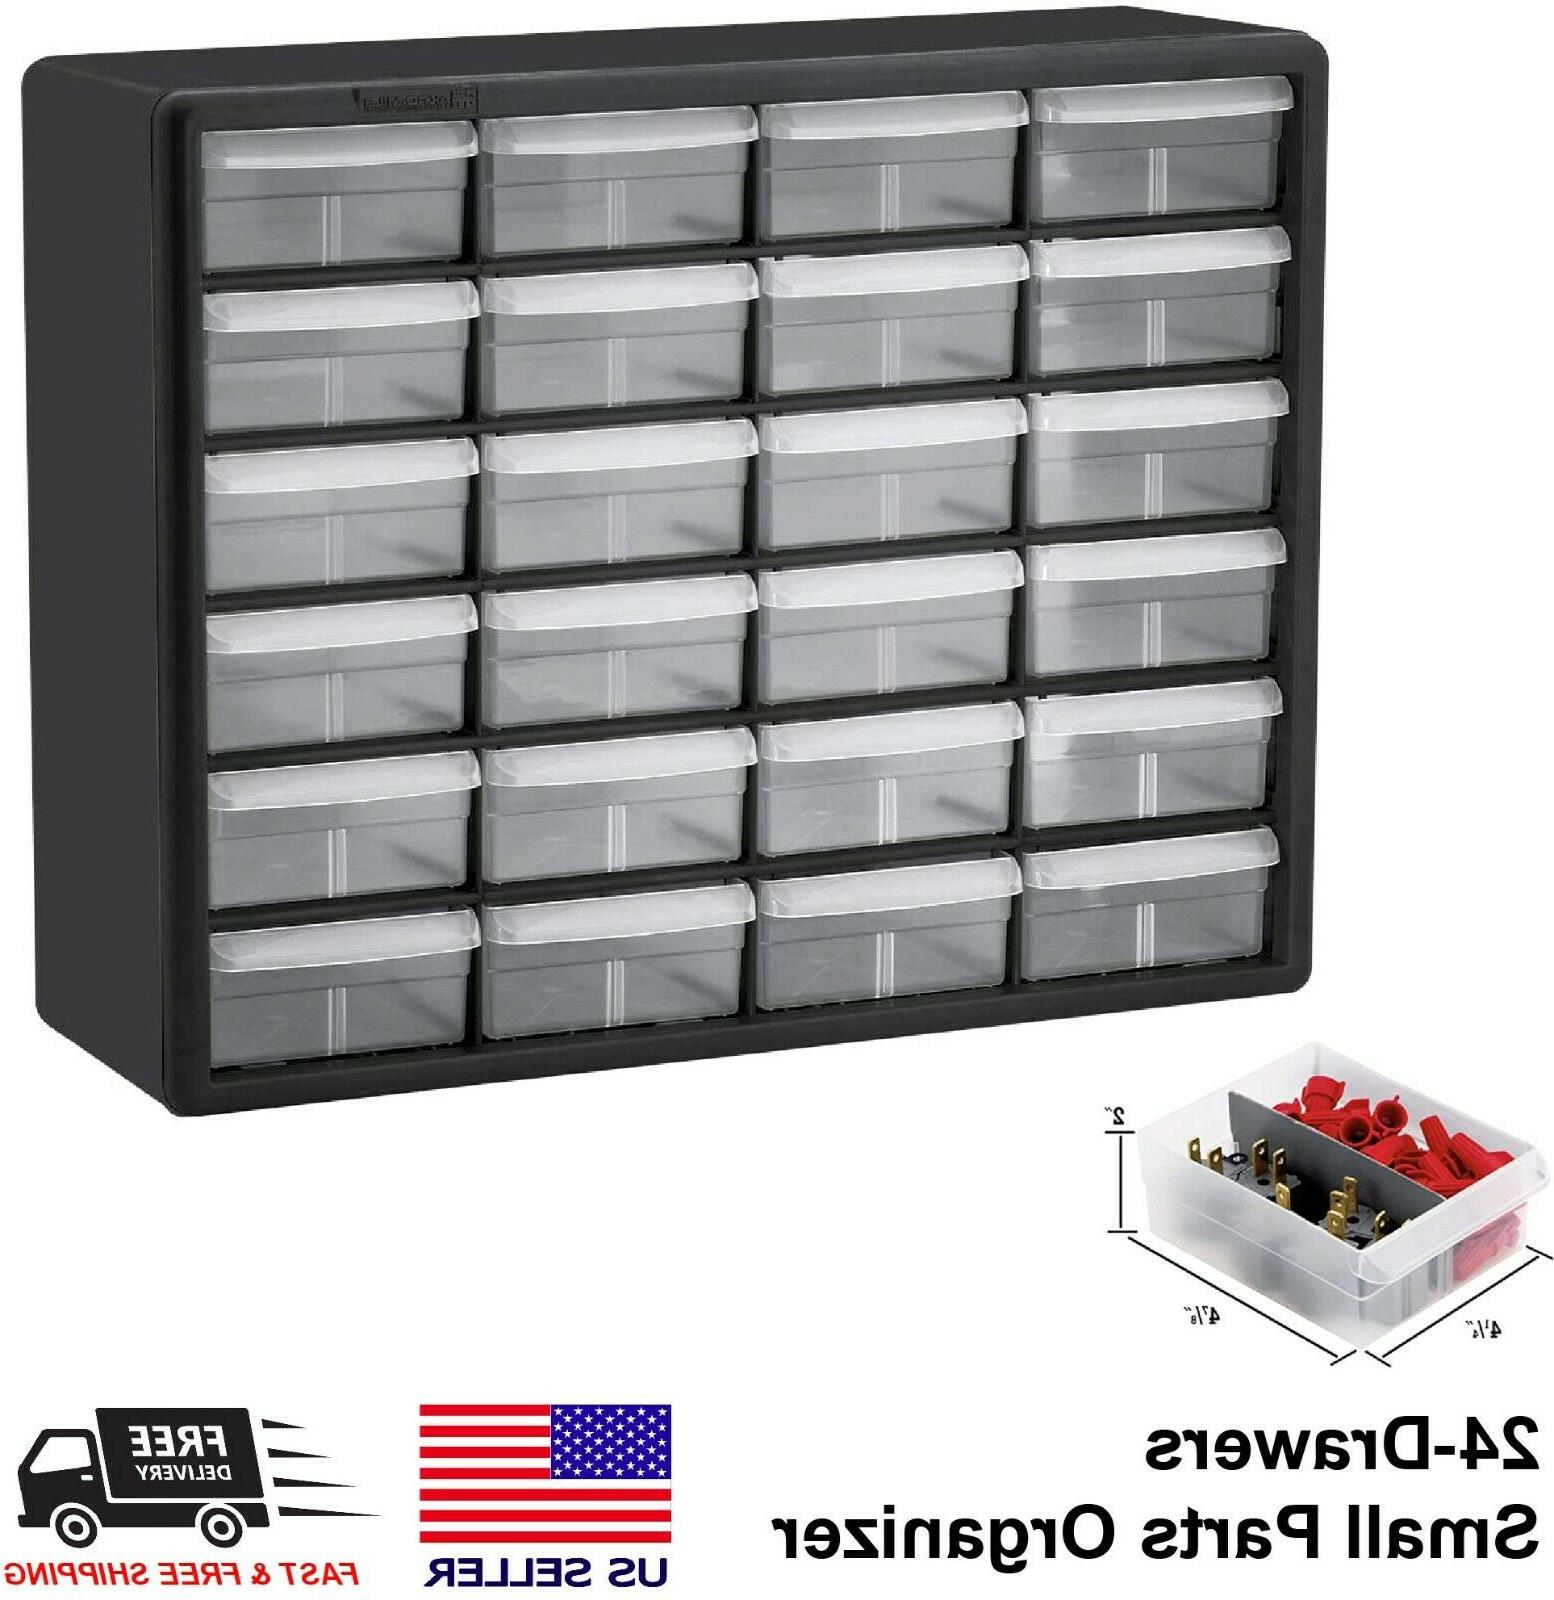 24 drawers small parts storage container organizer